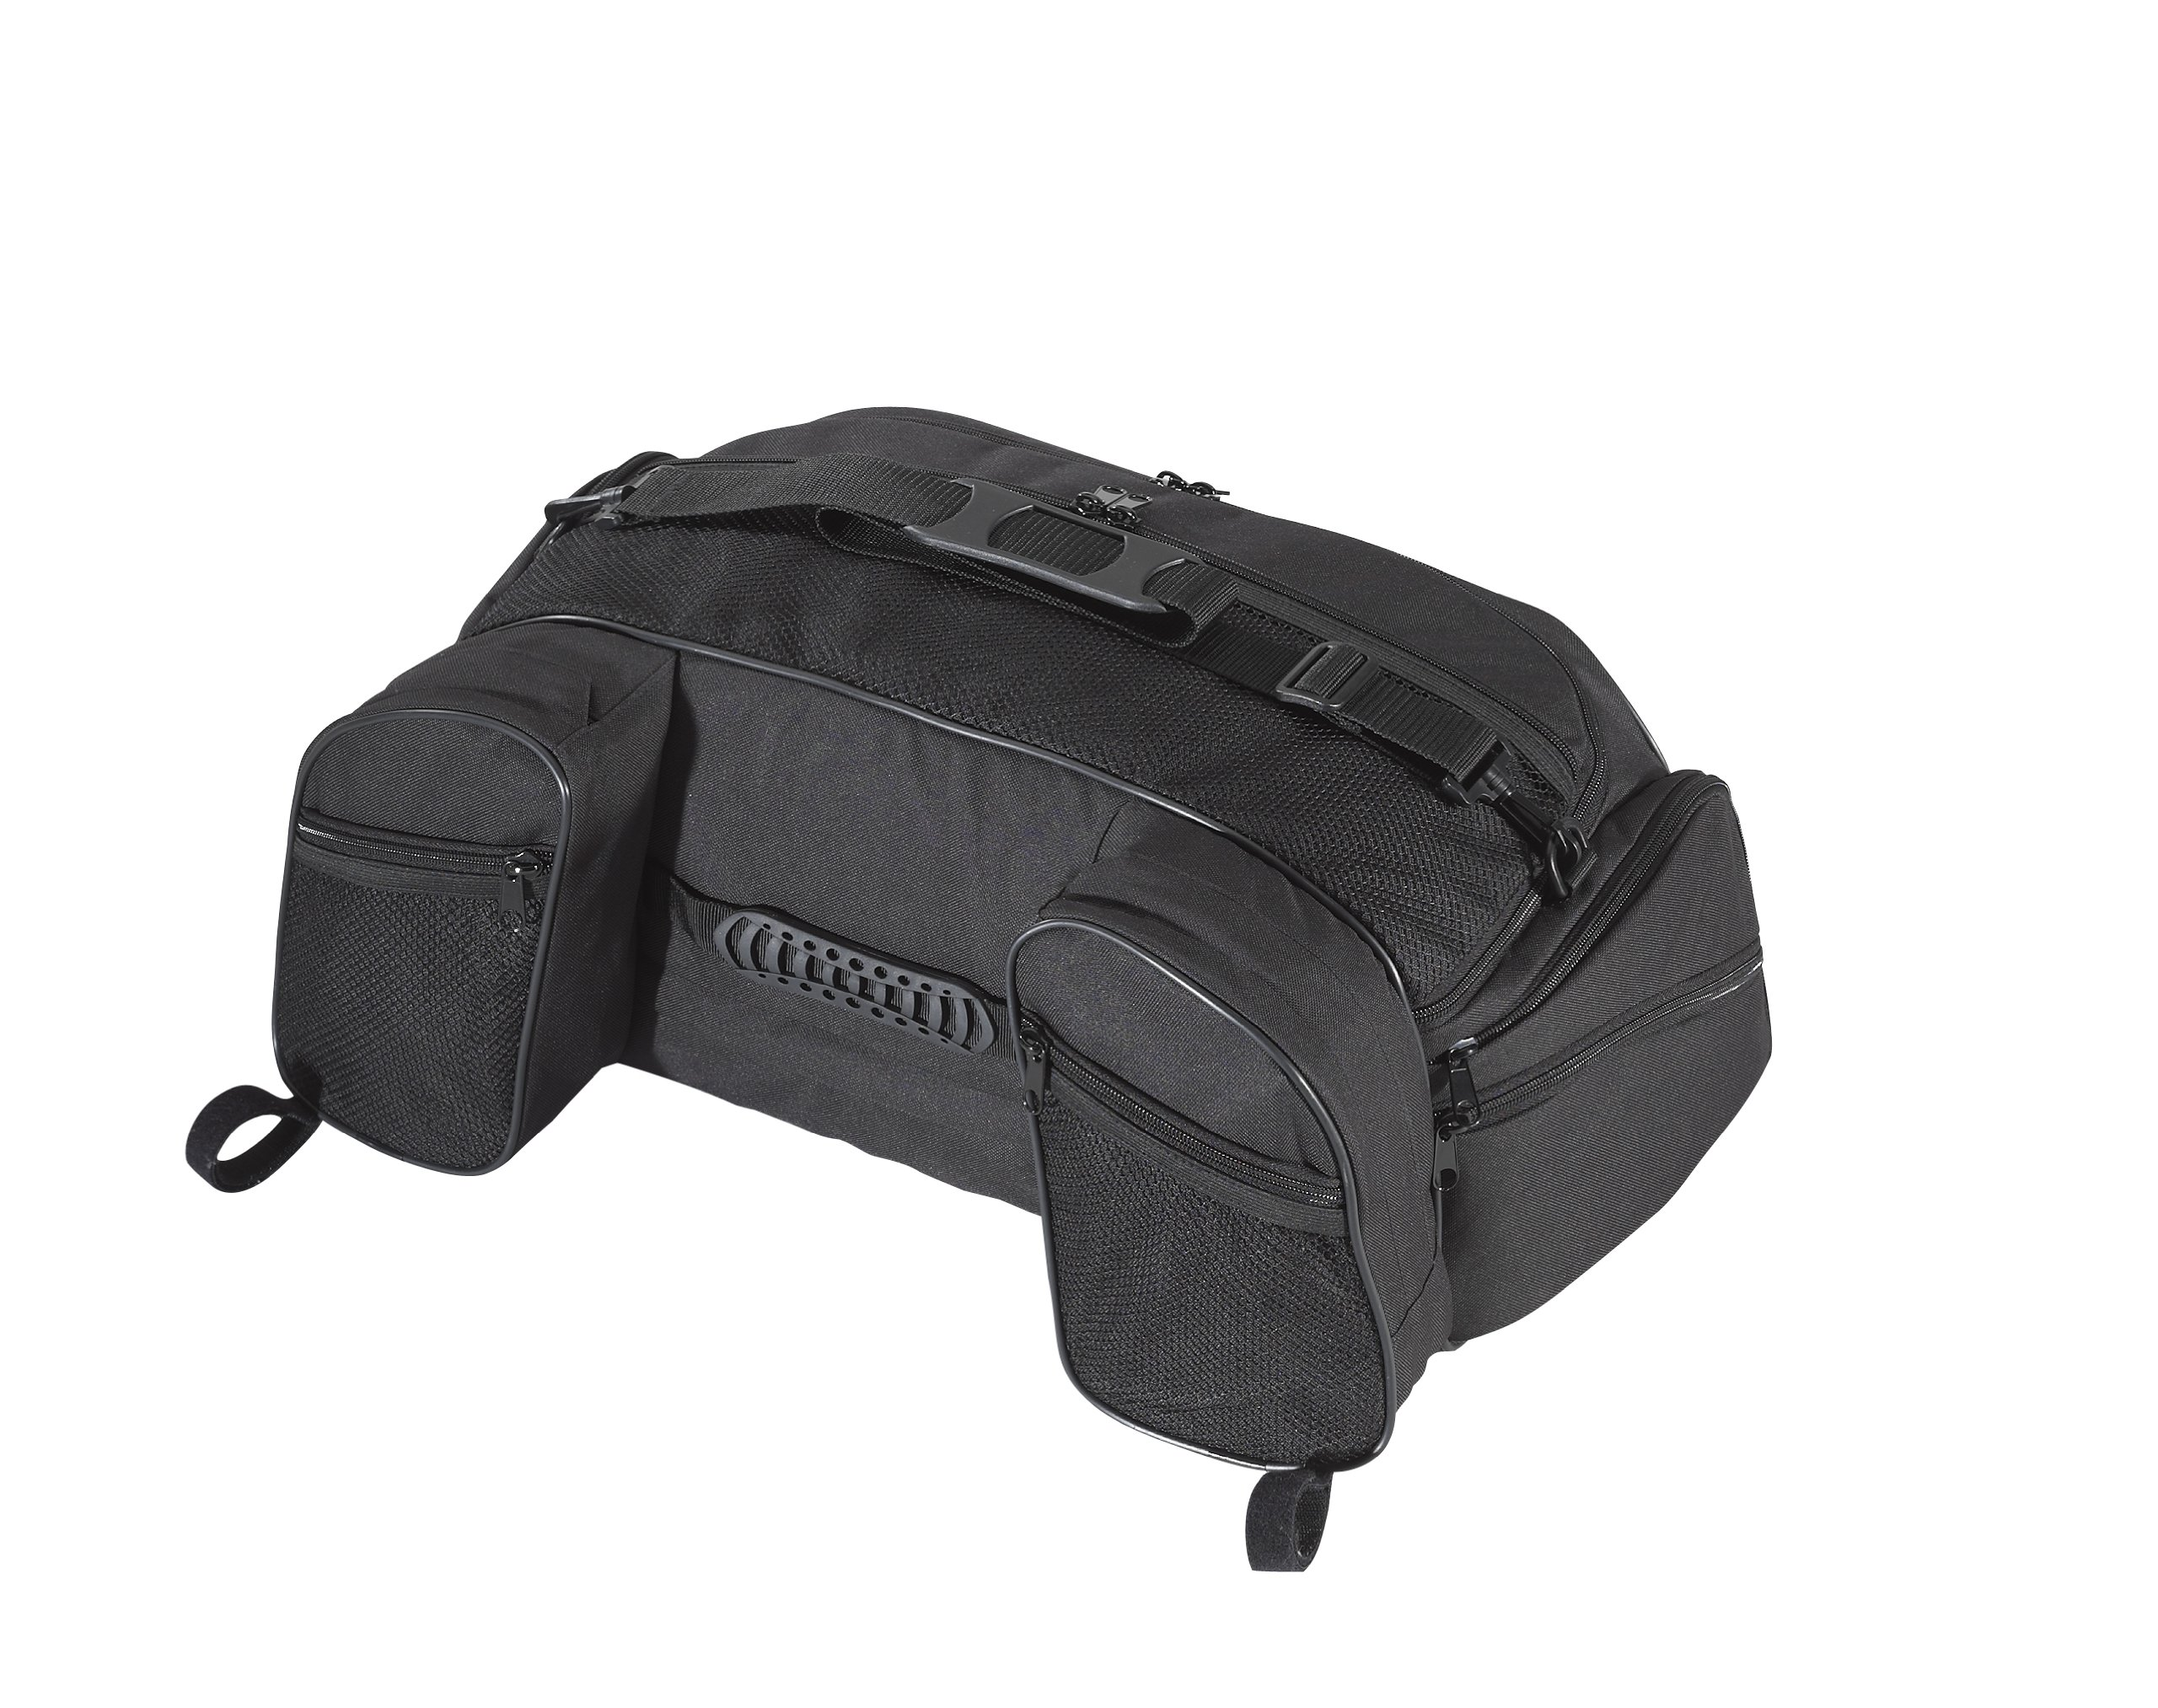 UltraGard 4-603 Black Touring Luggage Rack Bag by Ultragard